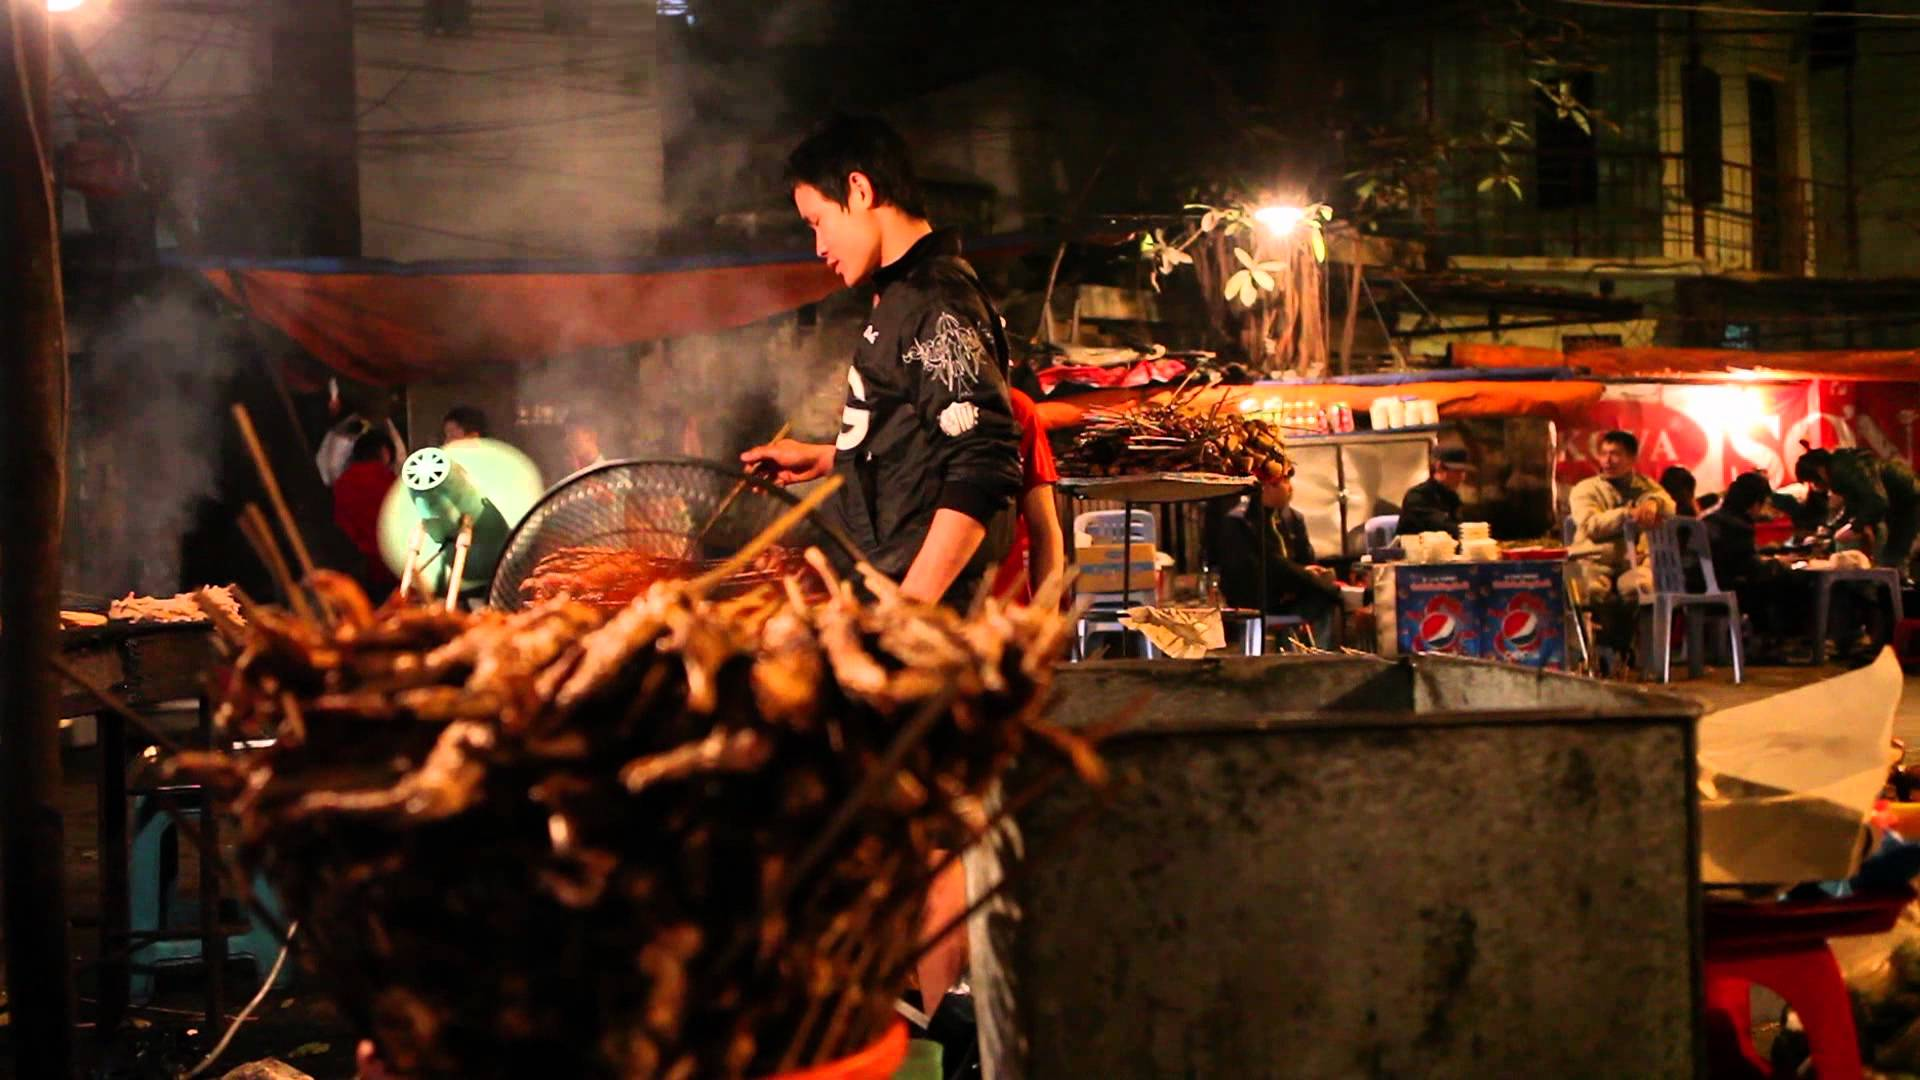 Five food streets in Hanoi, hang chieu, ly van phuc, to tich, hang than, hanoi food, street food in hanoi, hanoi travel, travel news, Vietnam guide, Vietnam airlines, Vietnam tour, tour Vietnam, Hanoi, ho chi minh city, Saigon, travelling to Vietnam, Viet